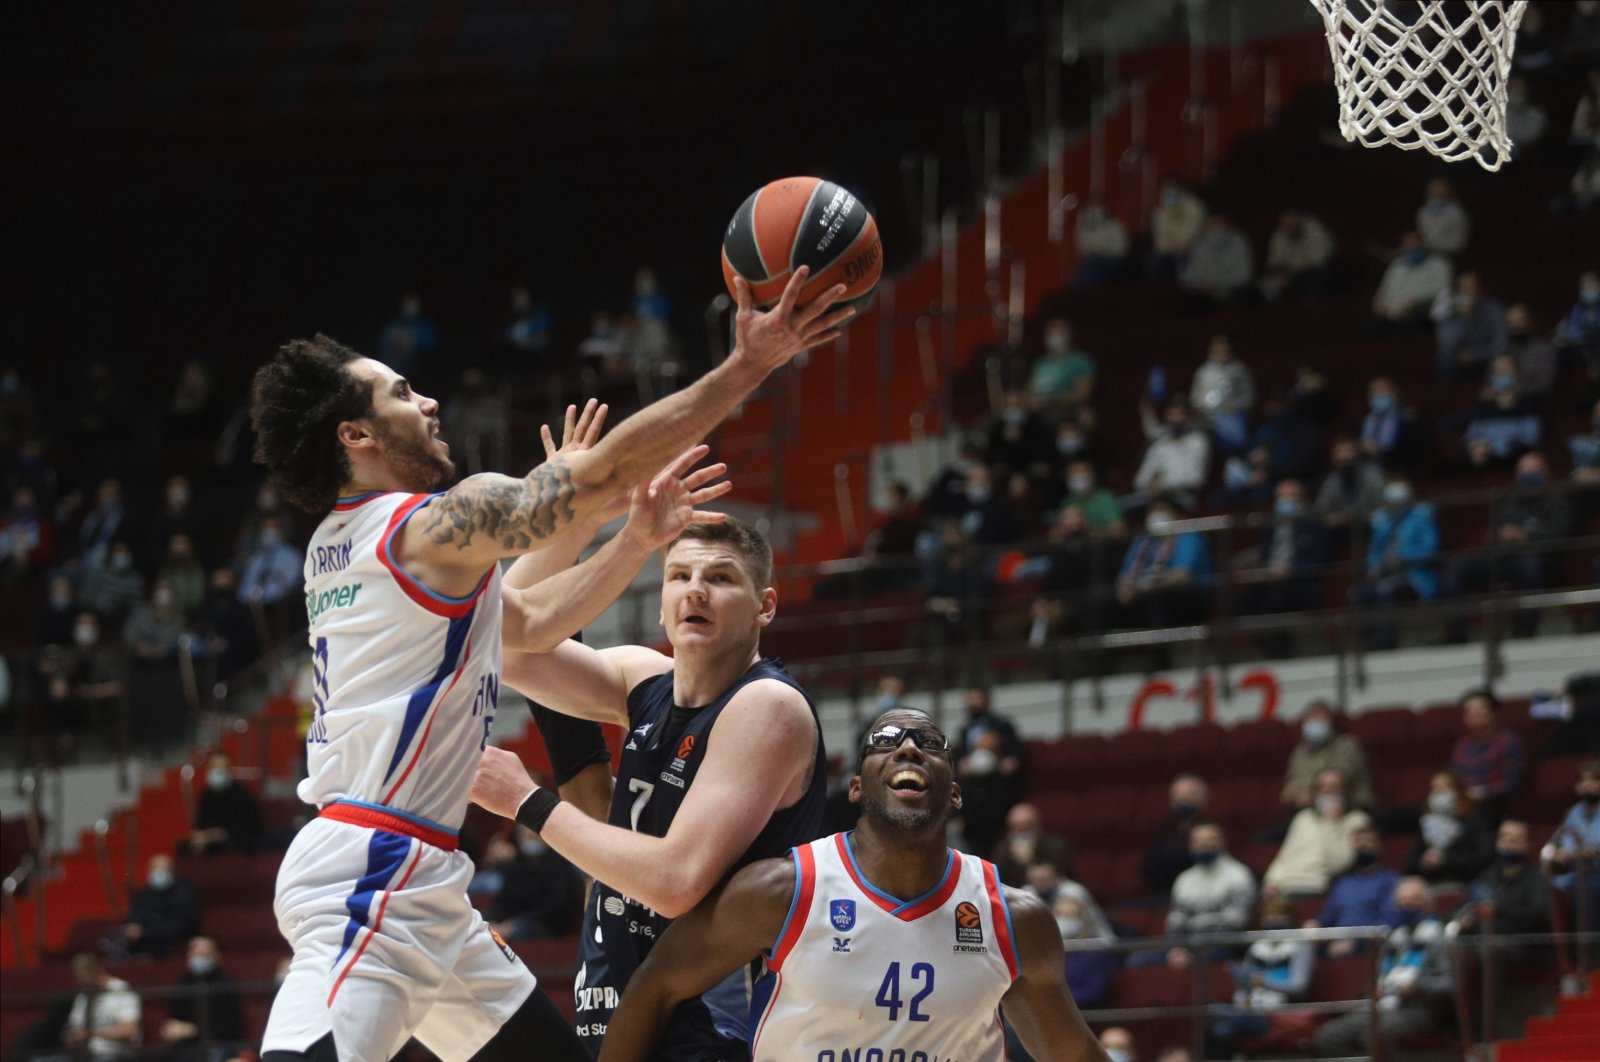 Anadolu Efes' Shane Larkin (L) attempts a shot in a THY EuroLeague match against Zenit, Sibur Arena, St. Petersburg, Russia, Jan. 21, 2021.